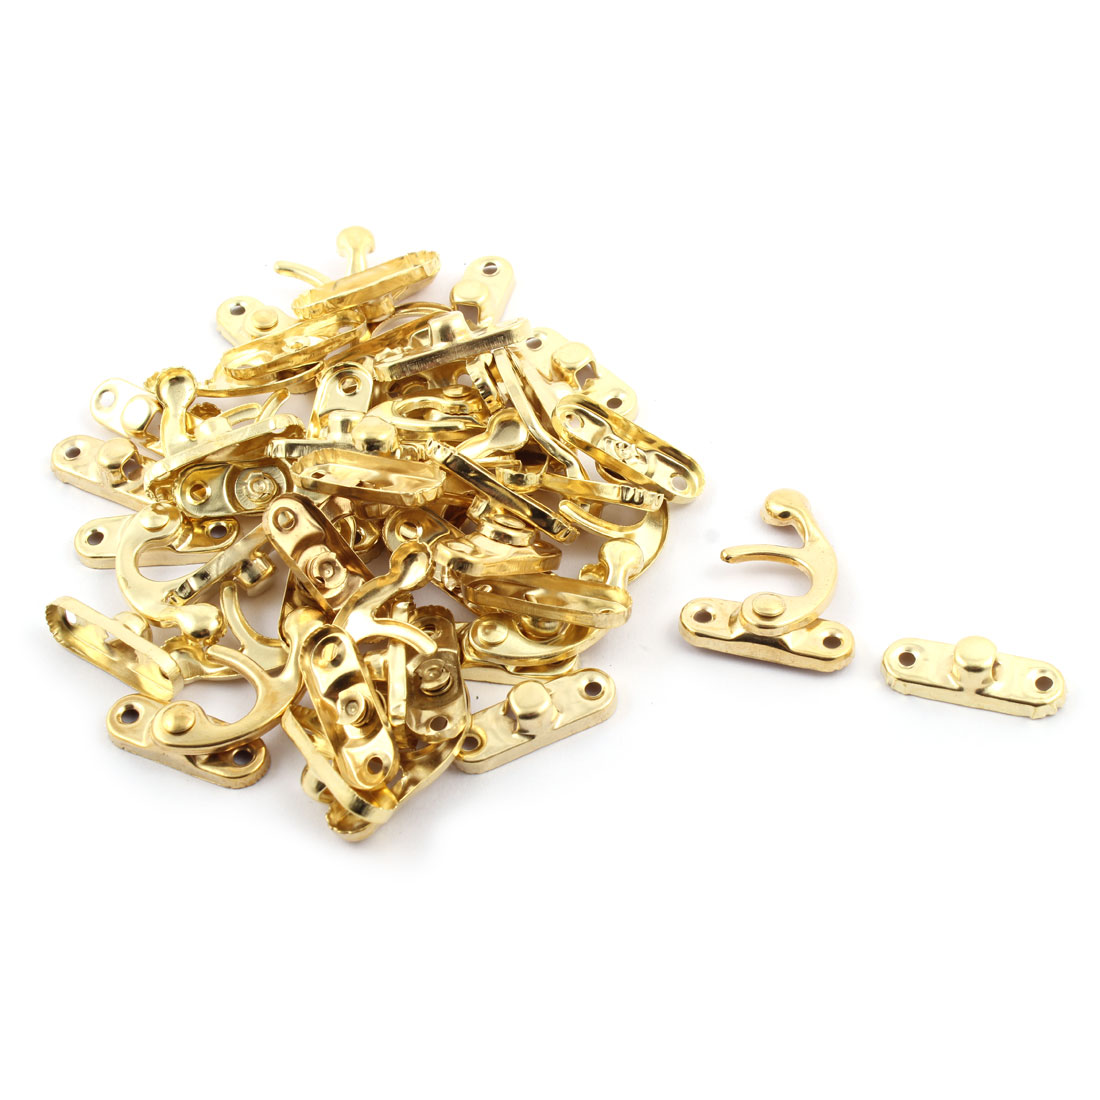 Home Metal Swing Bag Chest Hasp Box Latch Hook Lock Gold Tone 20 Sets